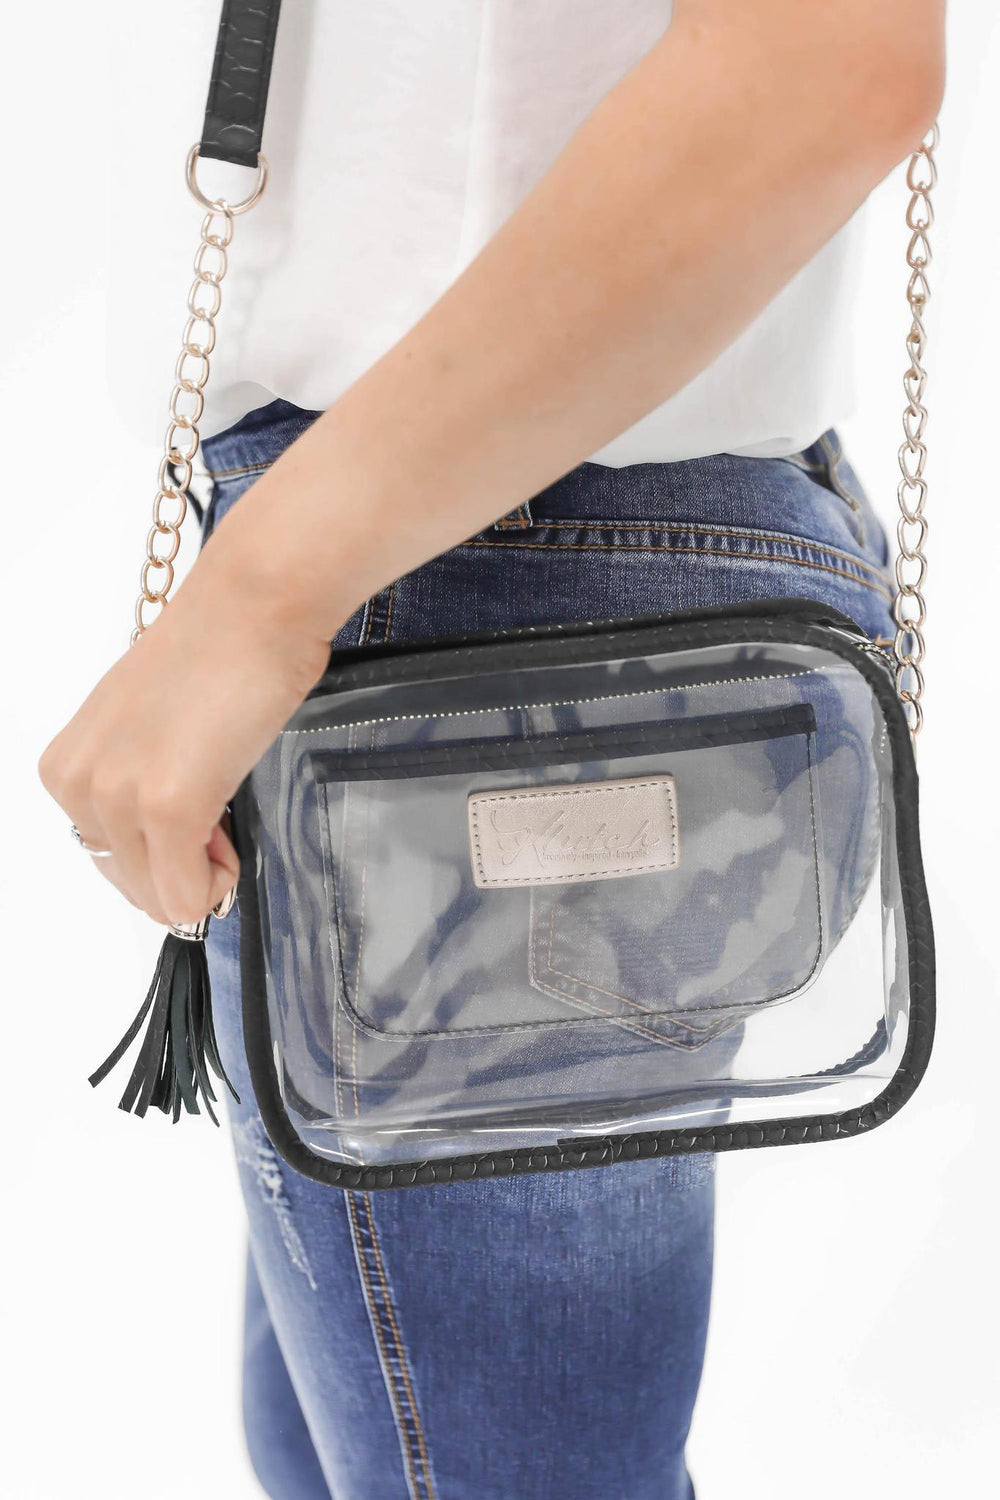 Game Day Clear Stadium Bag BLACK